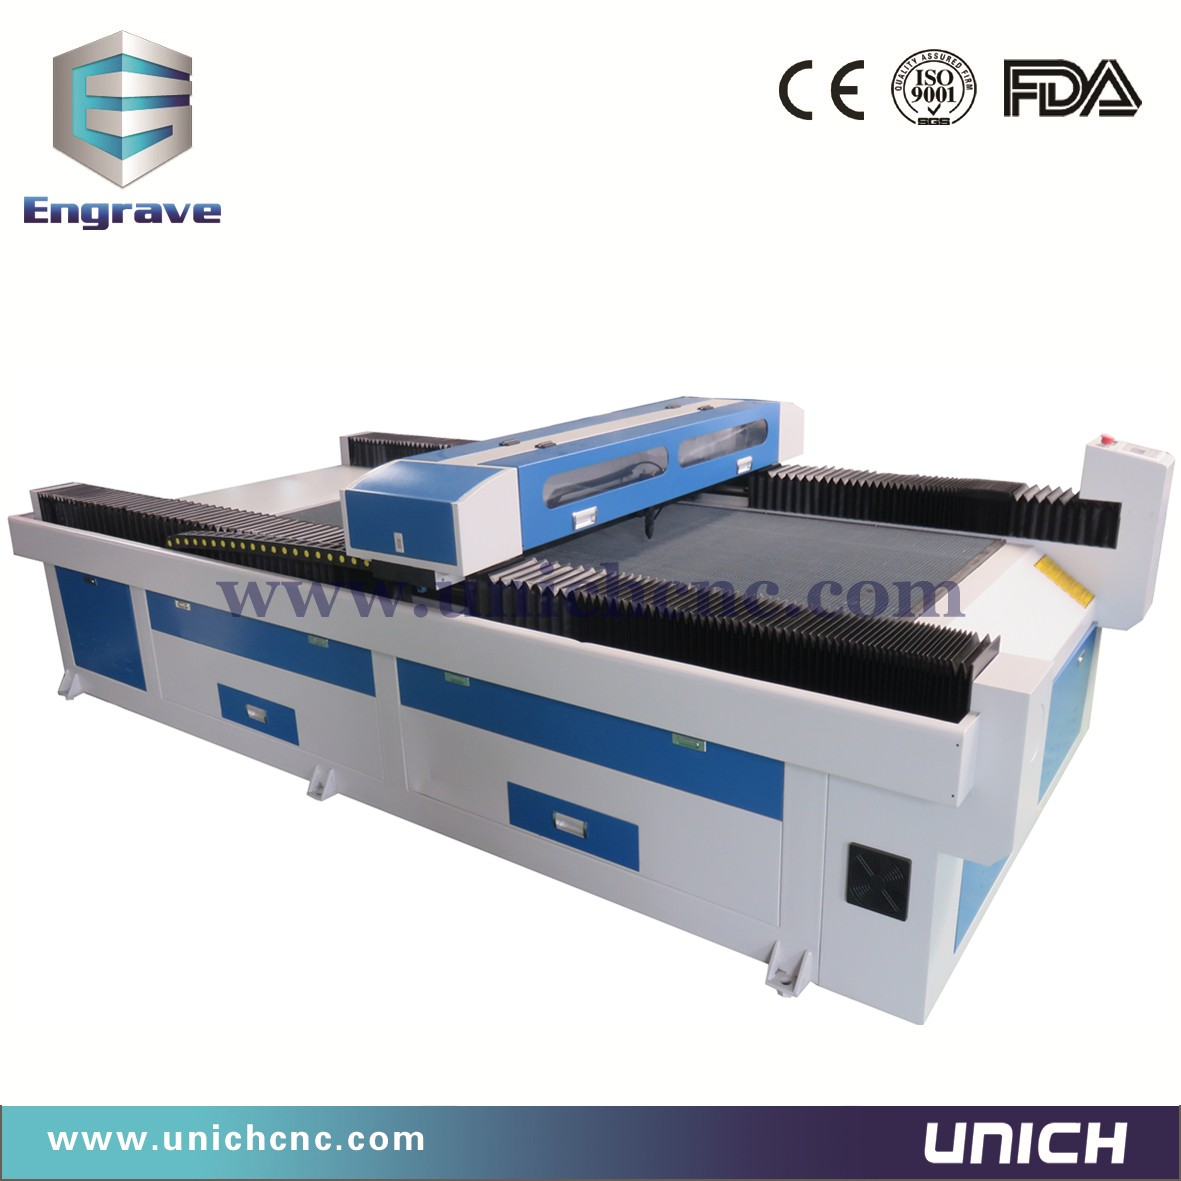 UNICH LXJ1325 CNC Laser (1300x2500mm working area ) laser engraving machine